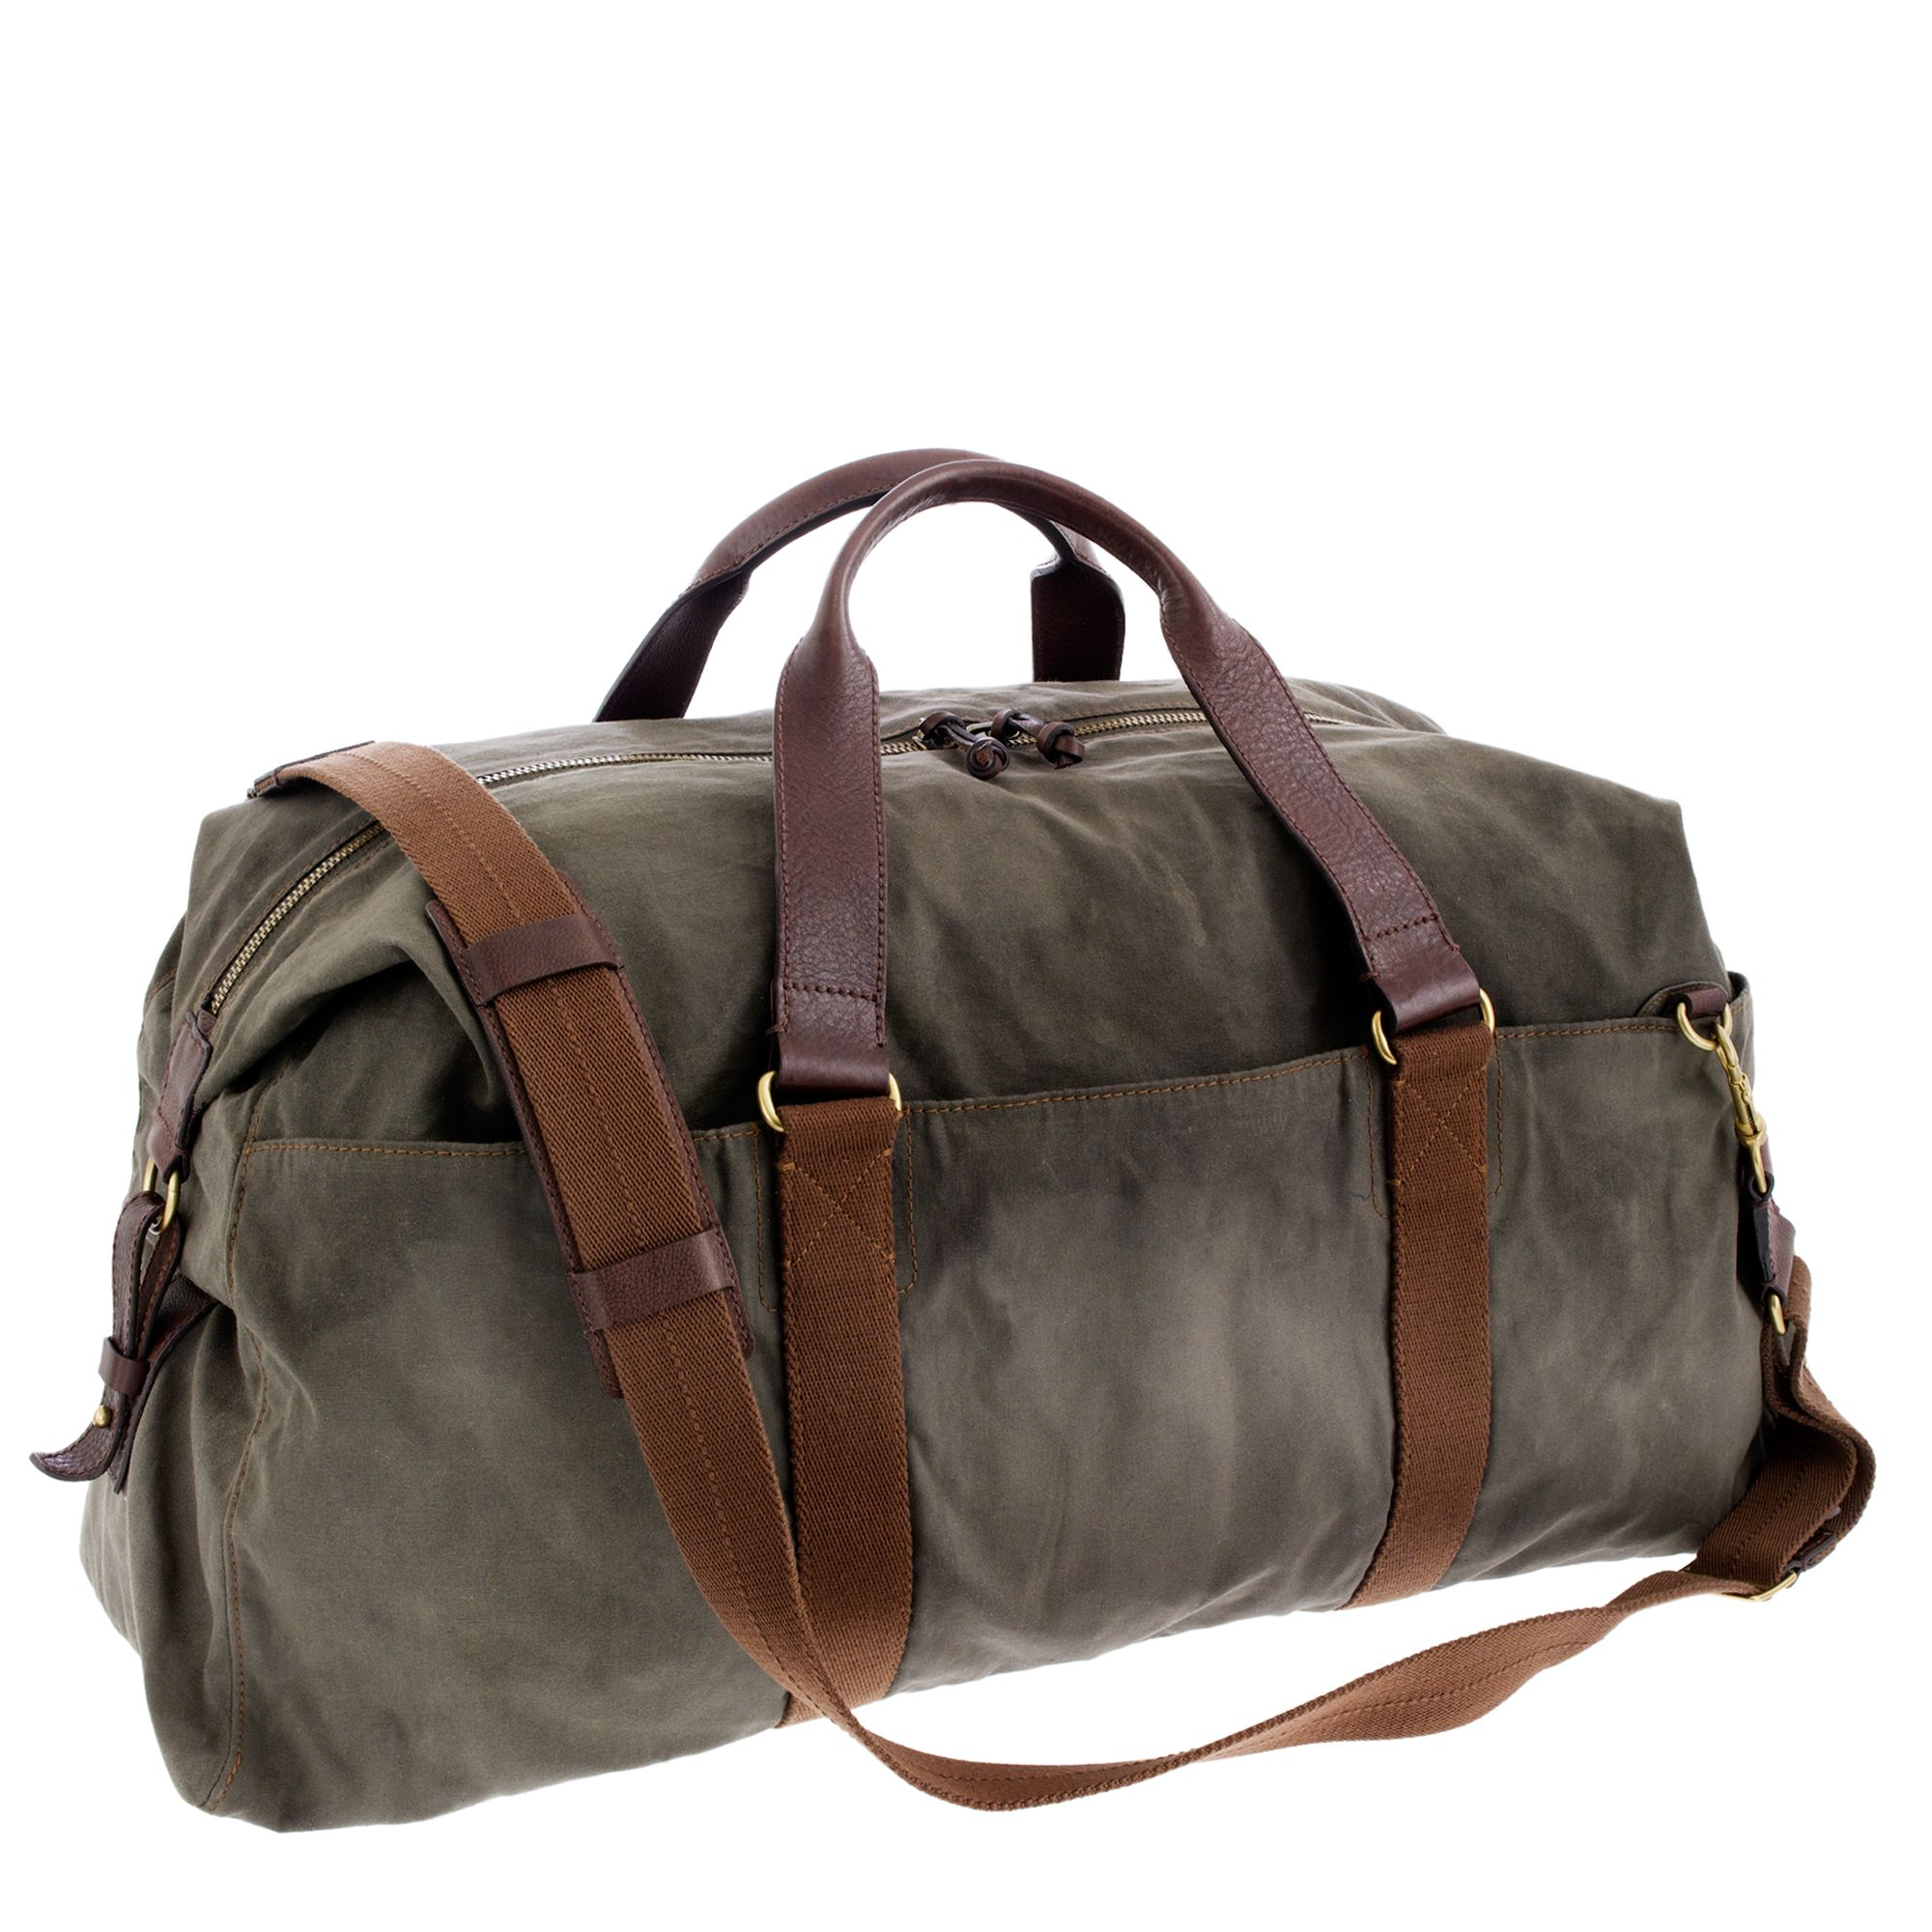 Weekend Travel Bag Mens Duffel Bag Vinatge Canvas Leather B(Xl 21'', Grey) $ 63 99 Prime. out of 5 stars Polare. Mens Full Grain Leather Duffel Bag Overnight Travel Duffle Weekender Bag. from $ 99 Prime. out of 5 stars NEWHEY.